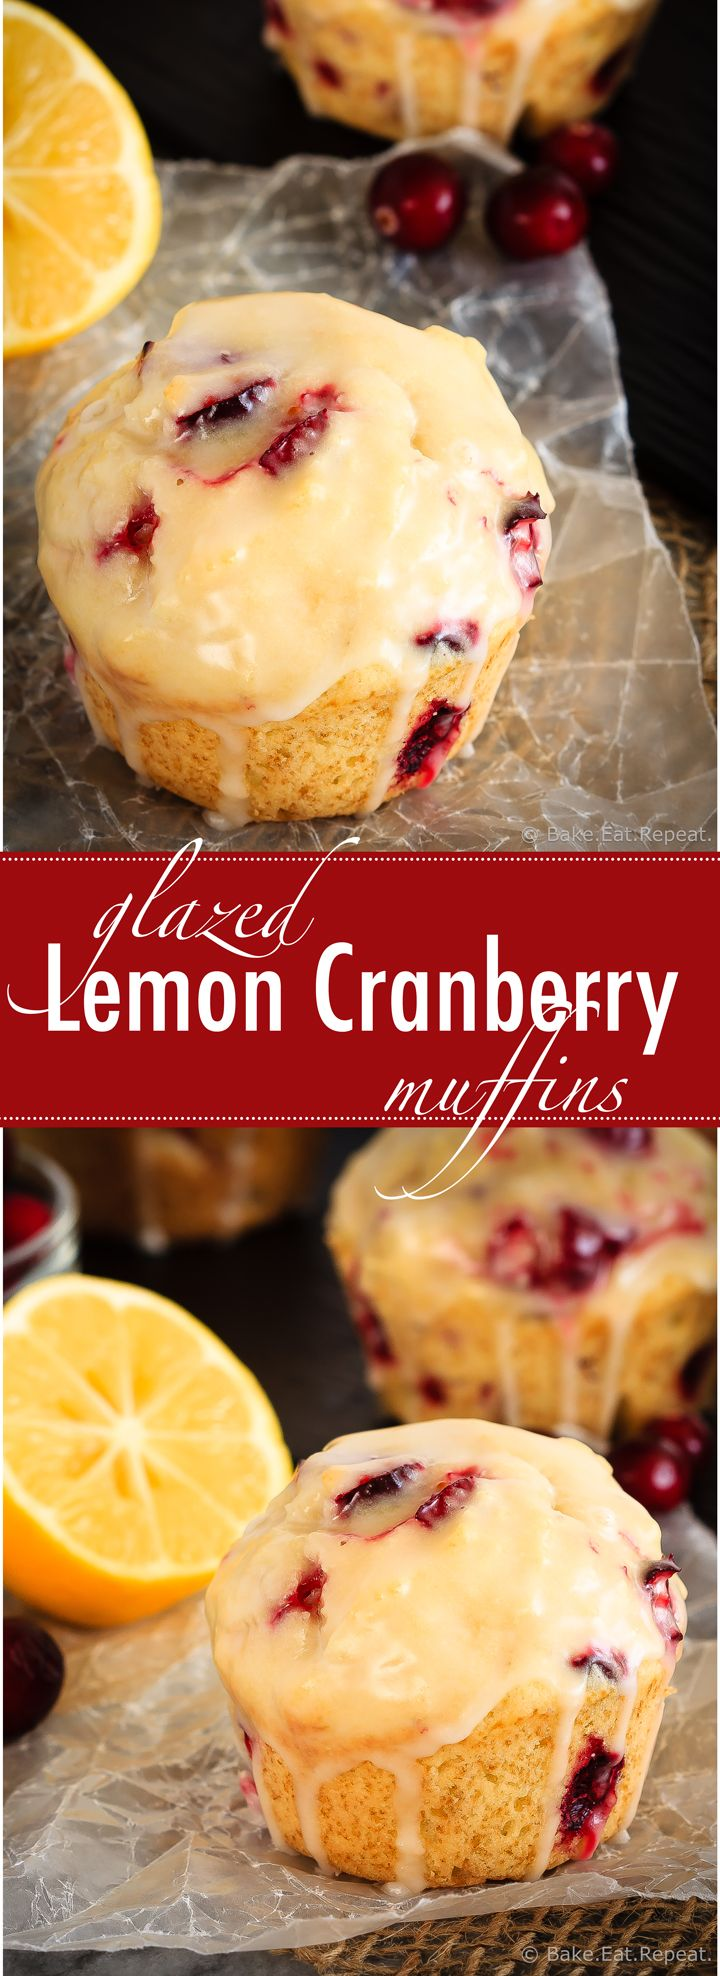 These glazed lemon cranberry muffins are light and fluffy wi..